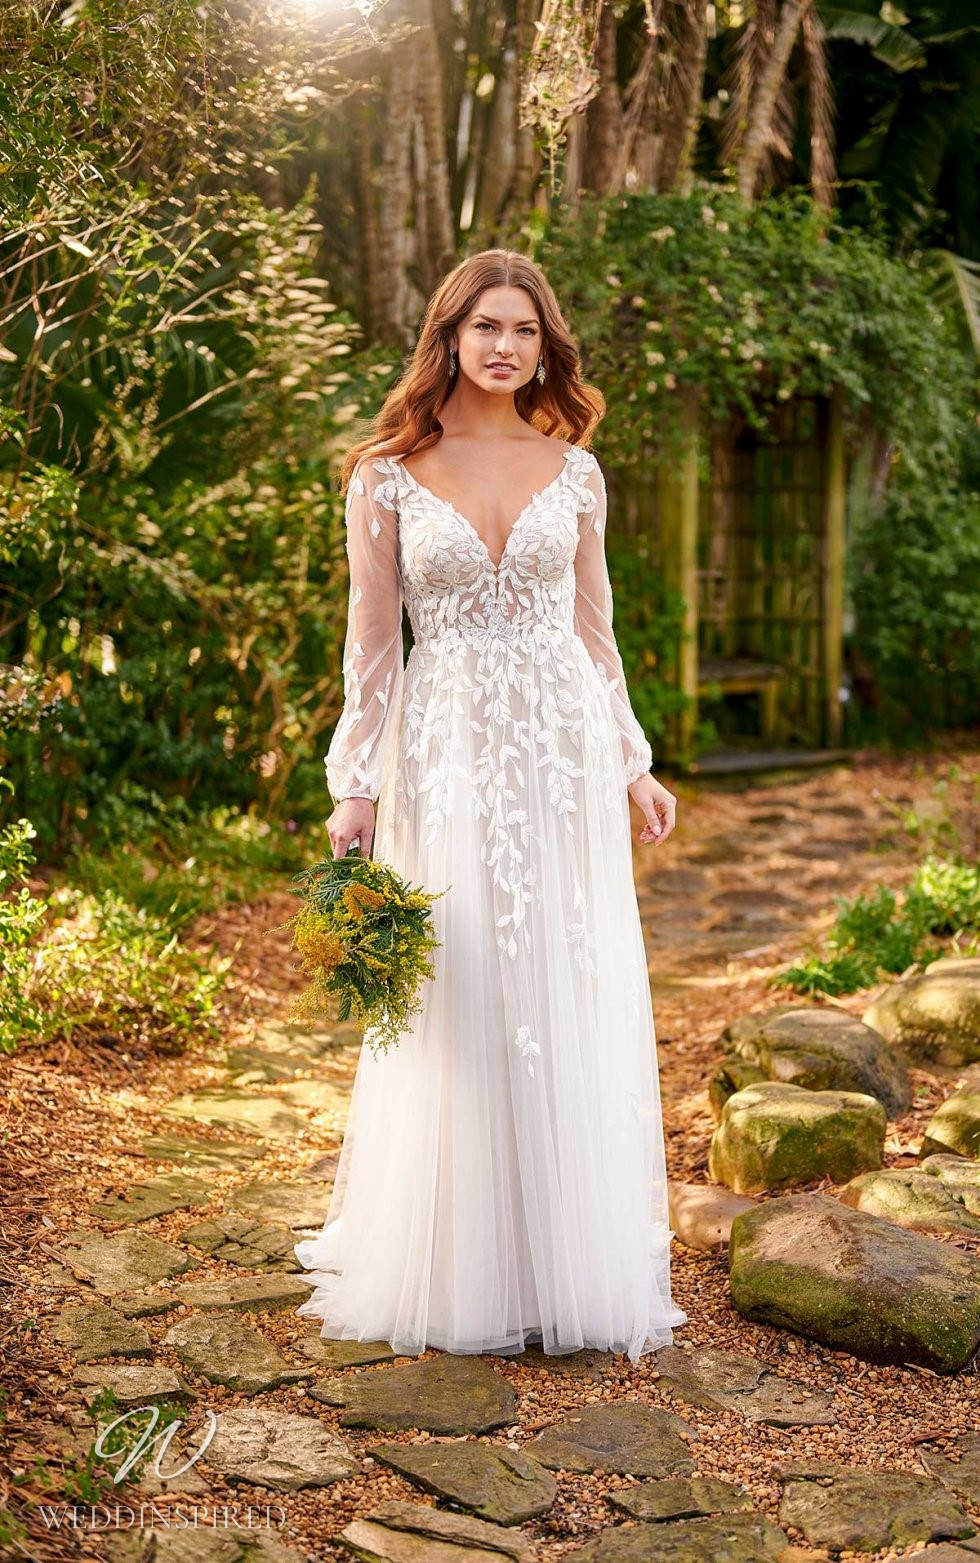 An Essense of Australia lace and tulle A-line wedding dress with long illusion sleeves